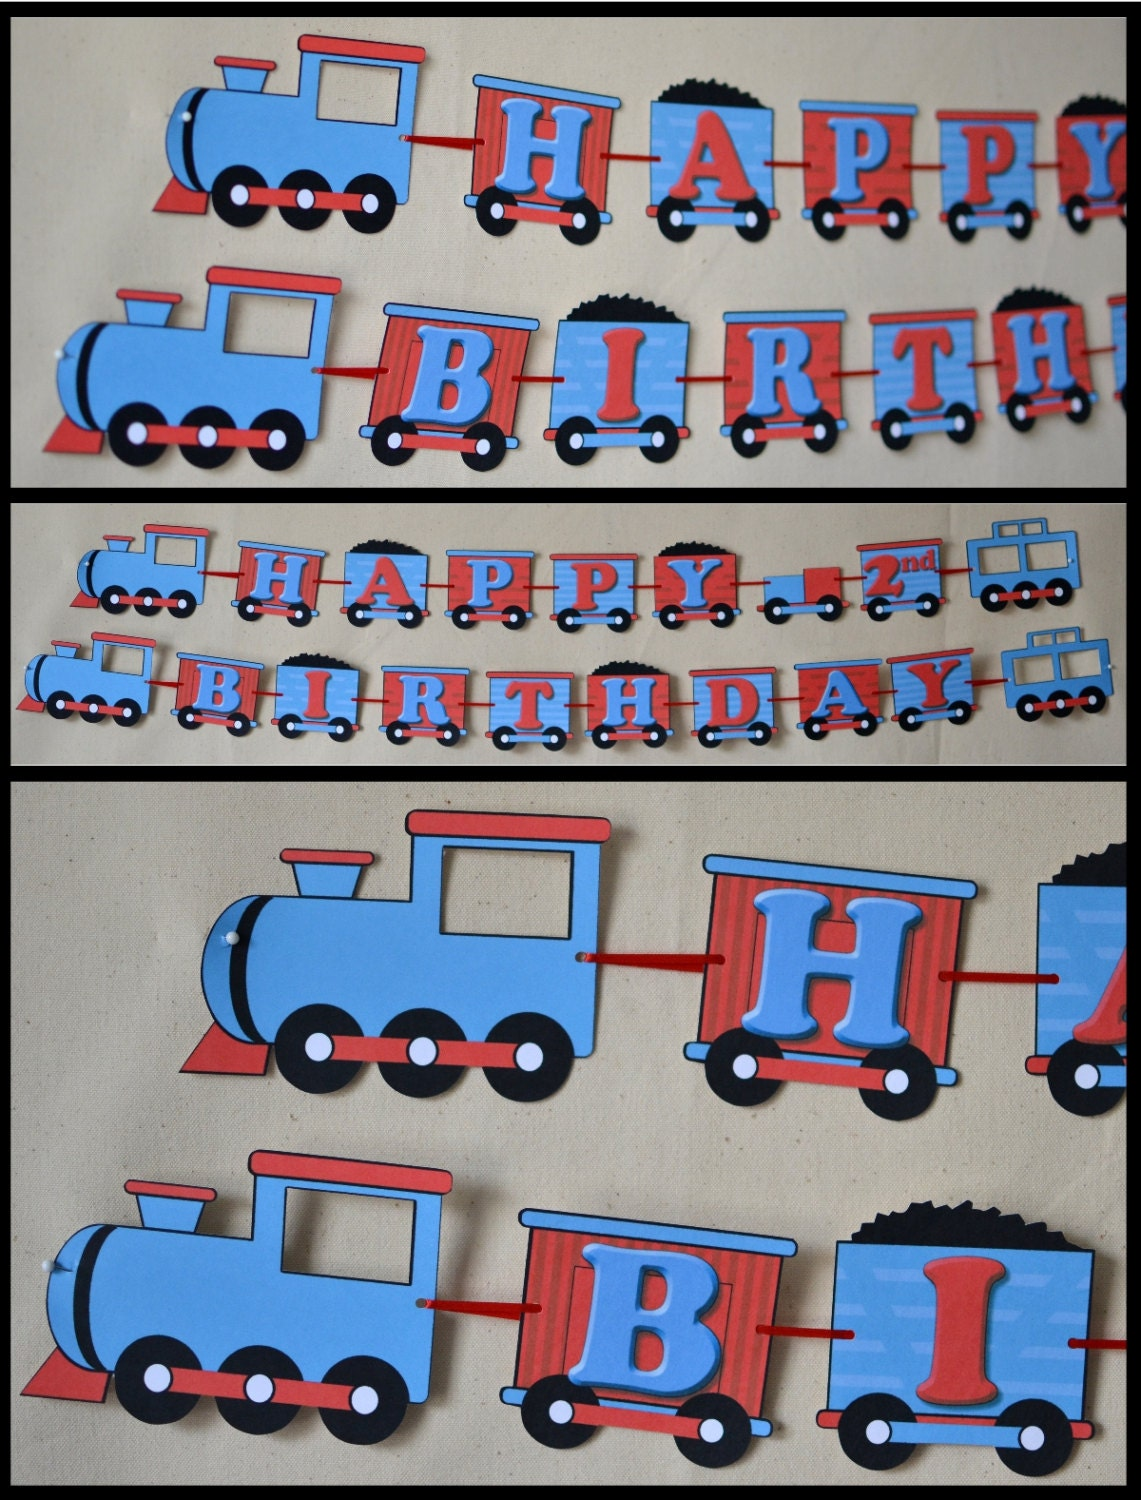 thomas the train birthday party decorations by bcpaperdesigns. Black Bedroom Furniture Sets. Home Design Ideas